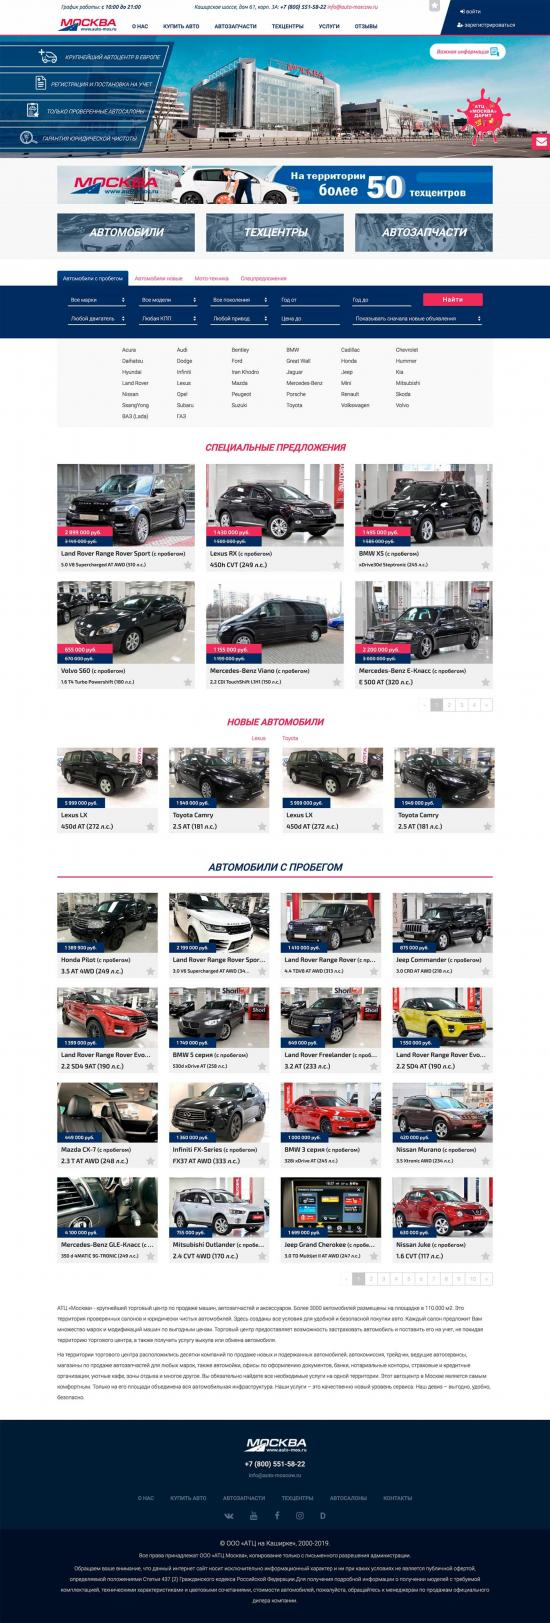 Desktop version of Automotive Shopping Сenter Moscow